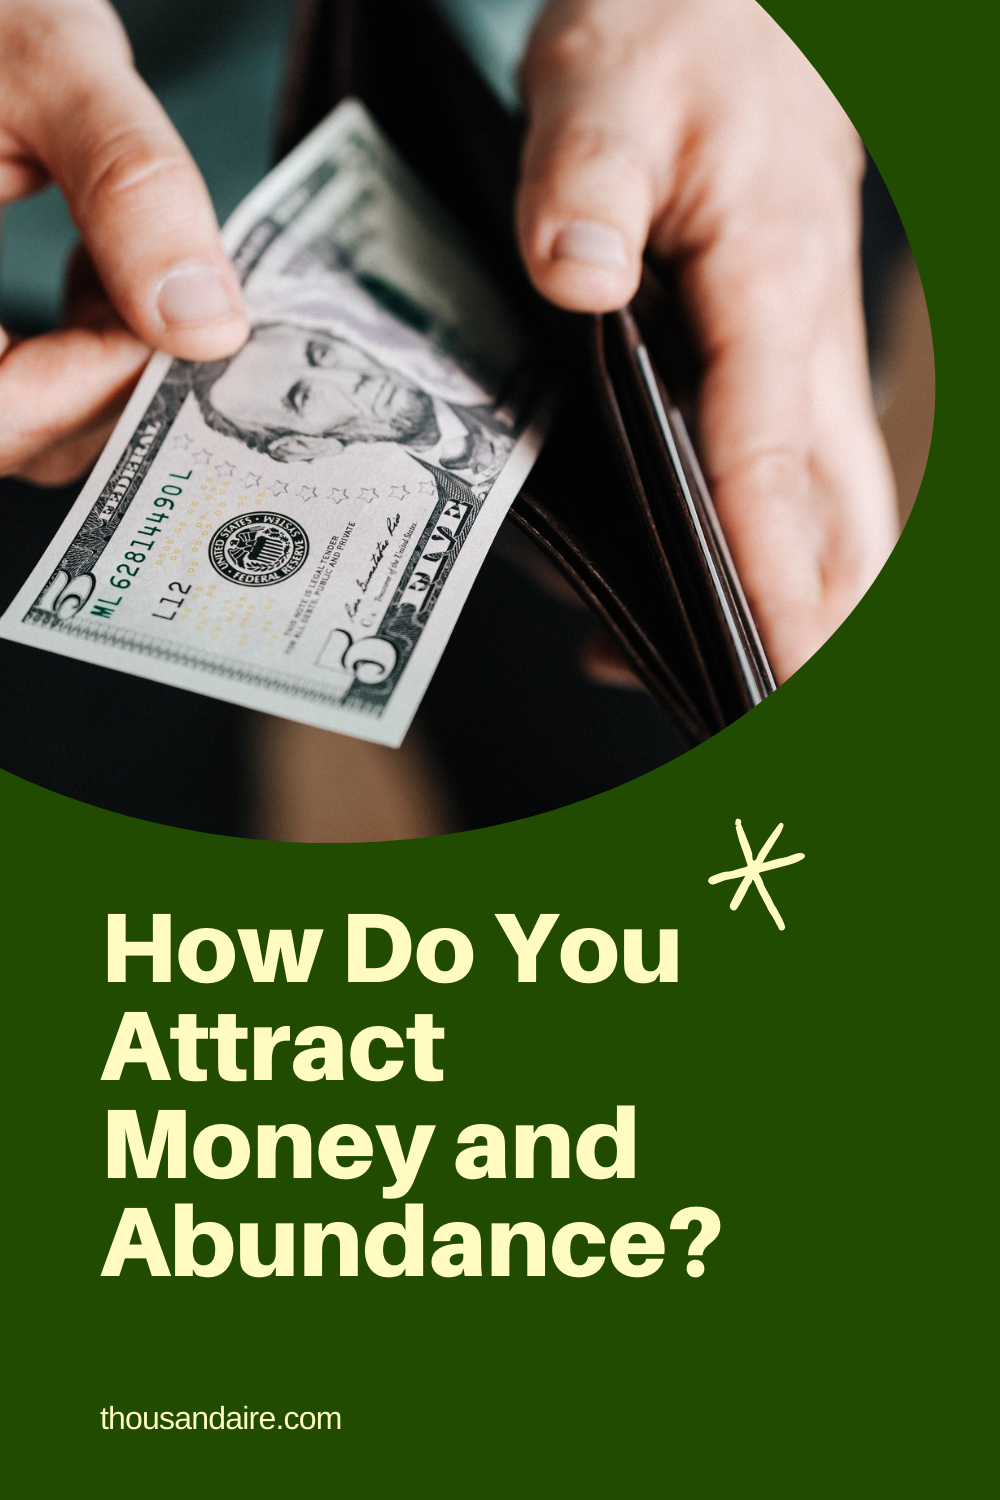 How Do You Attract Money and Abundance